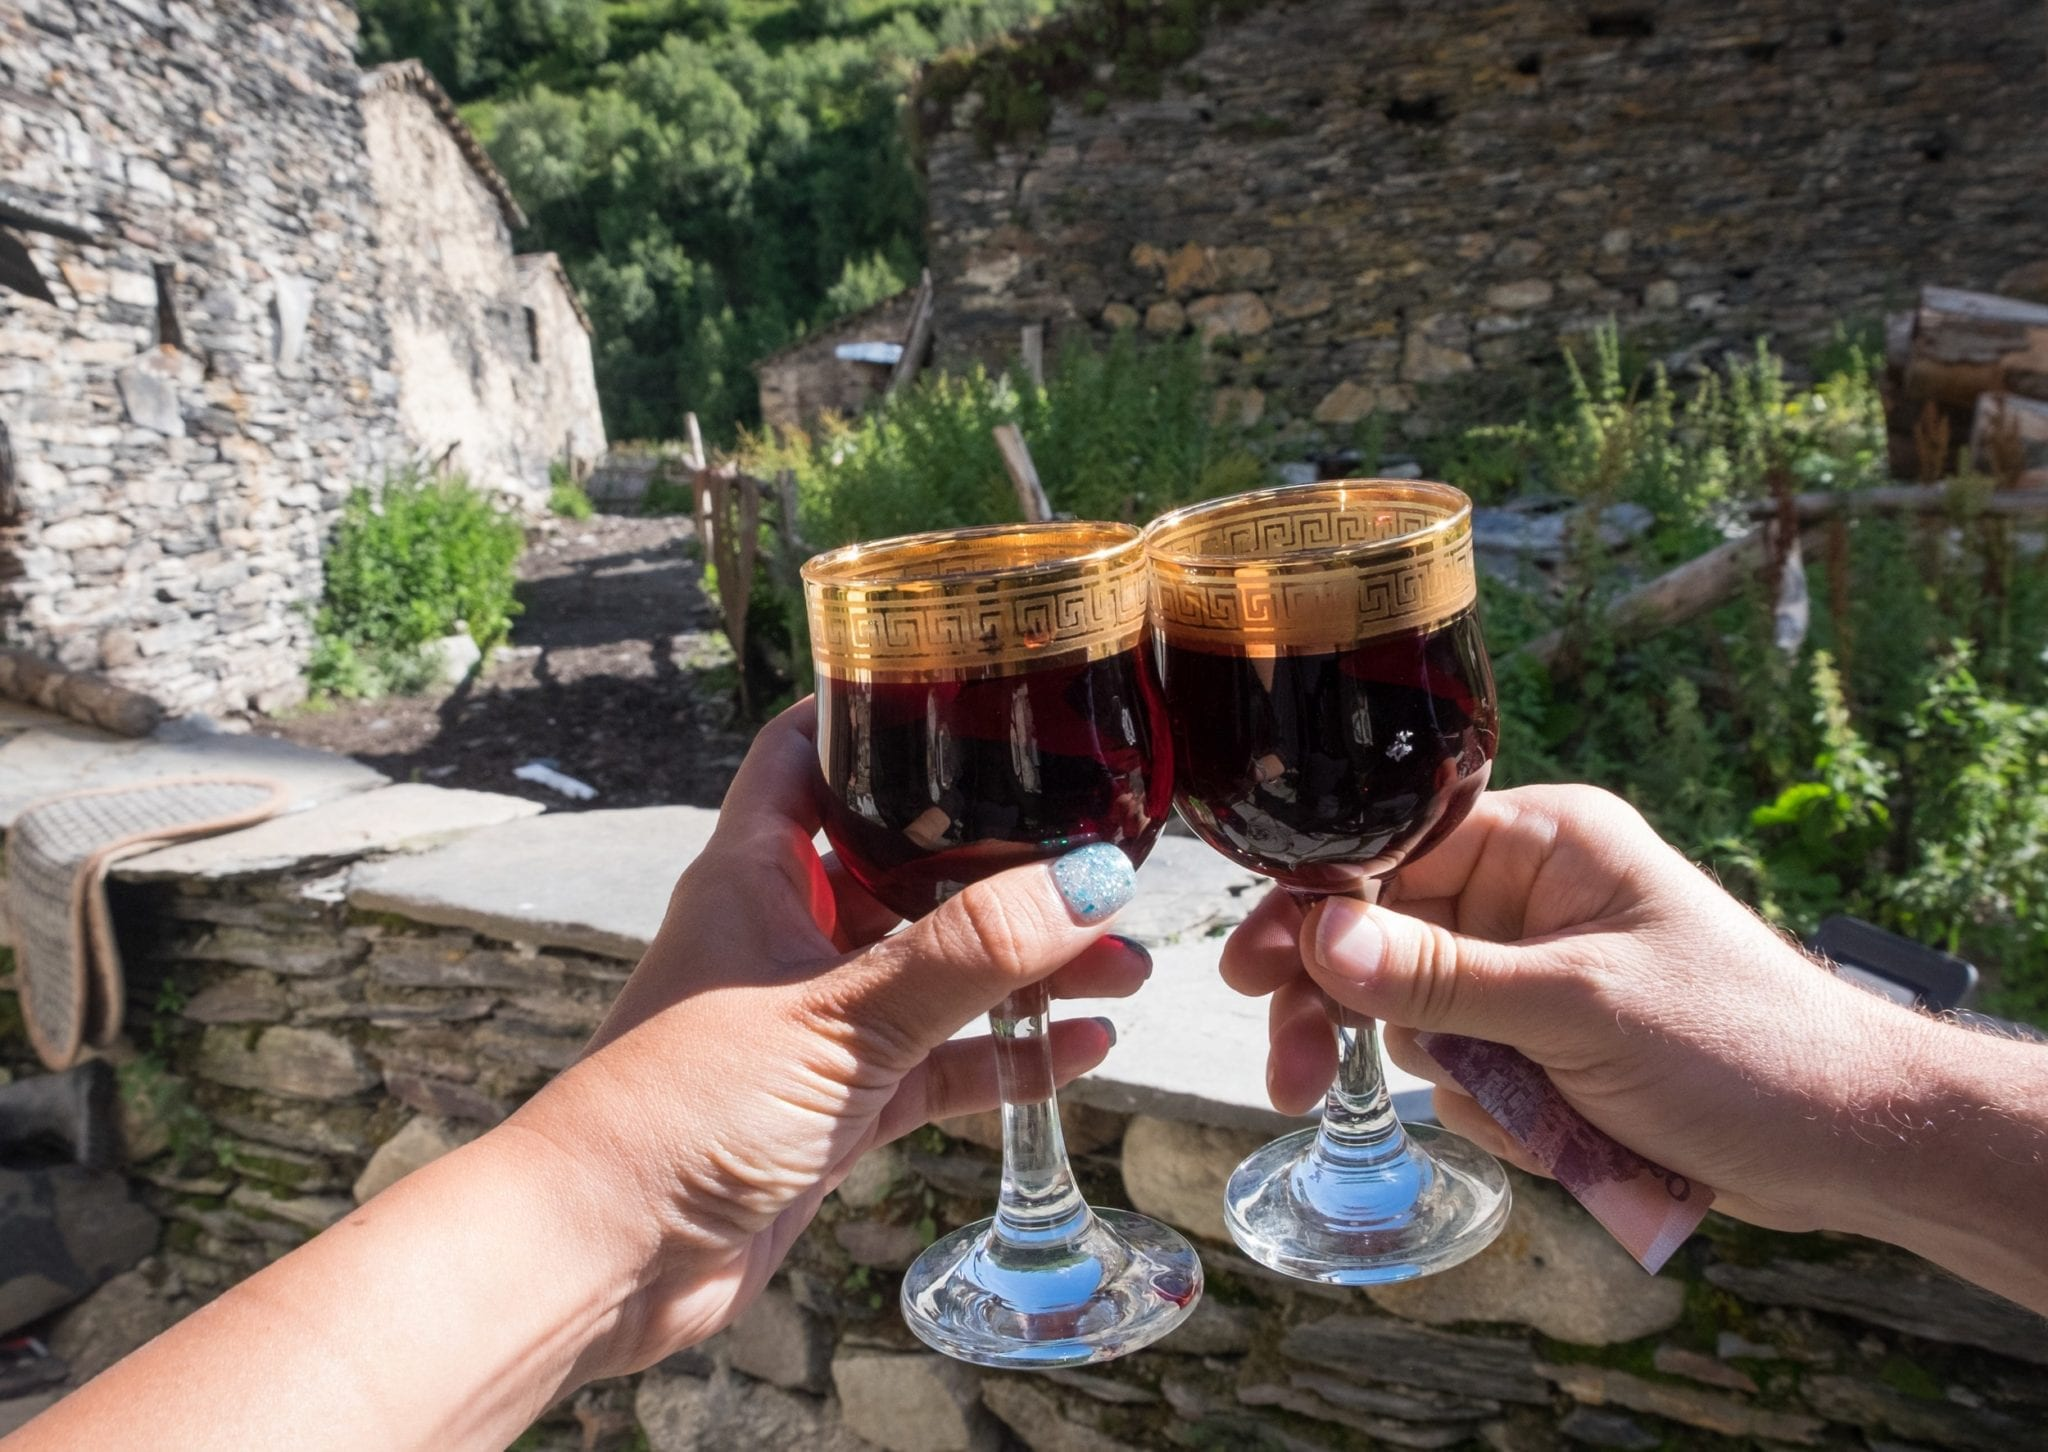 Two hands holding up tiny wine glasses edged with gold, each holding red wine, stone buildings in the distance.